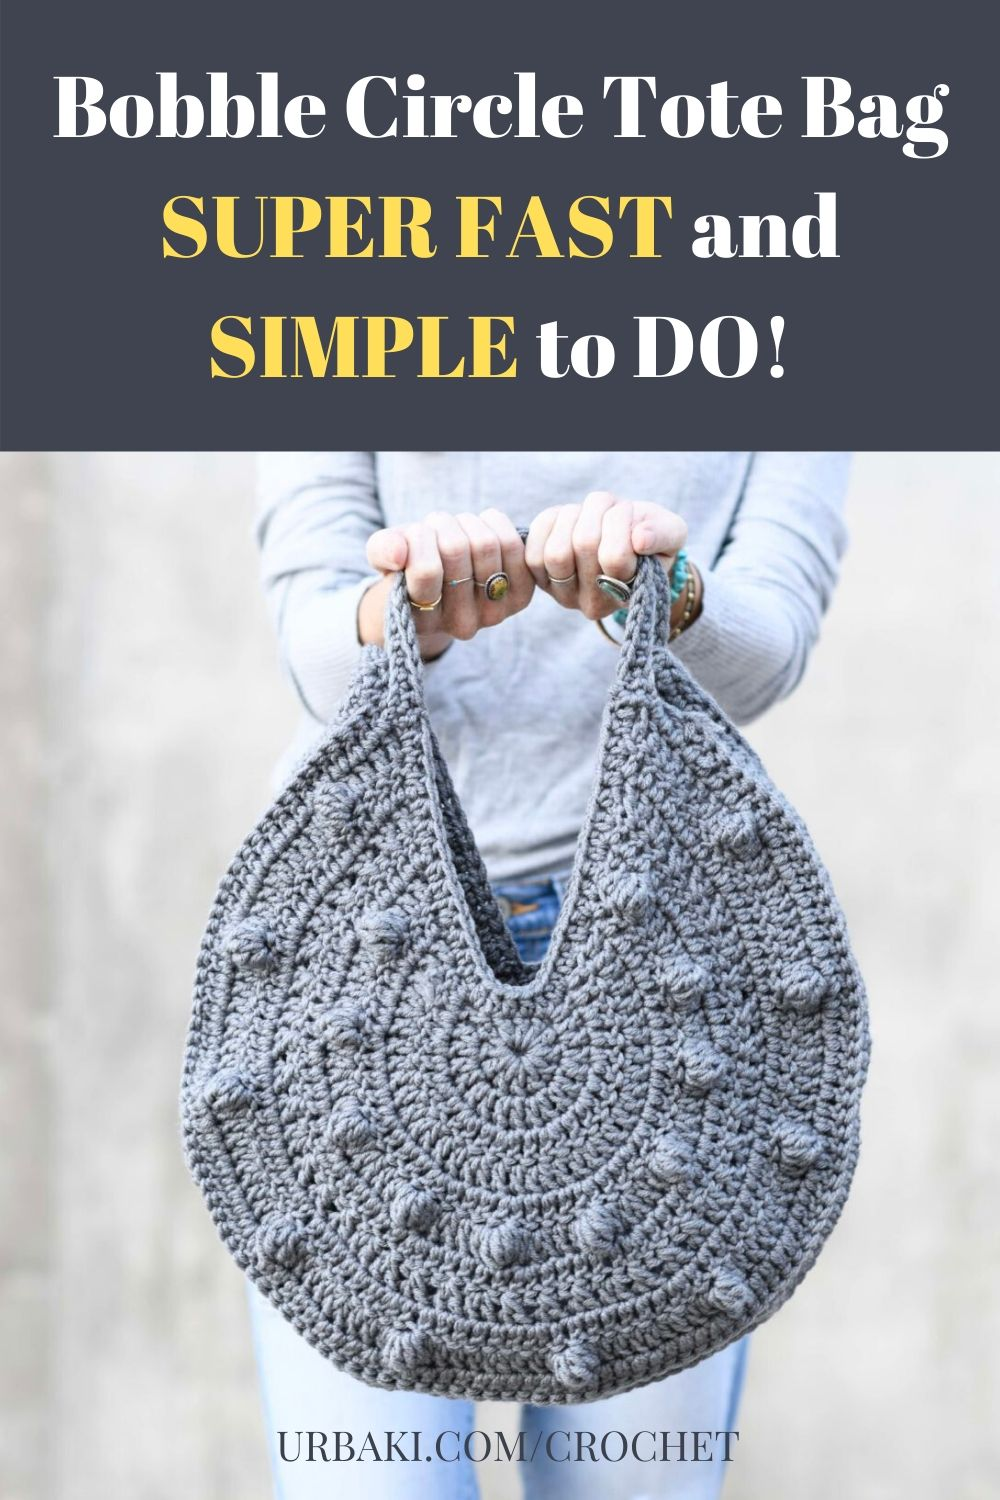 Bobble Circle Tote Bag SUPER FAST and SIMPLE to DO